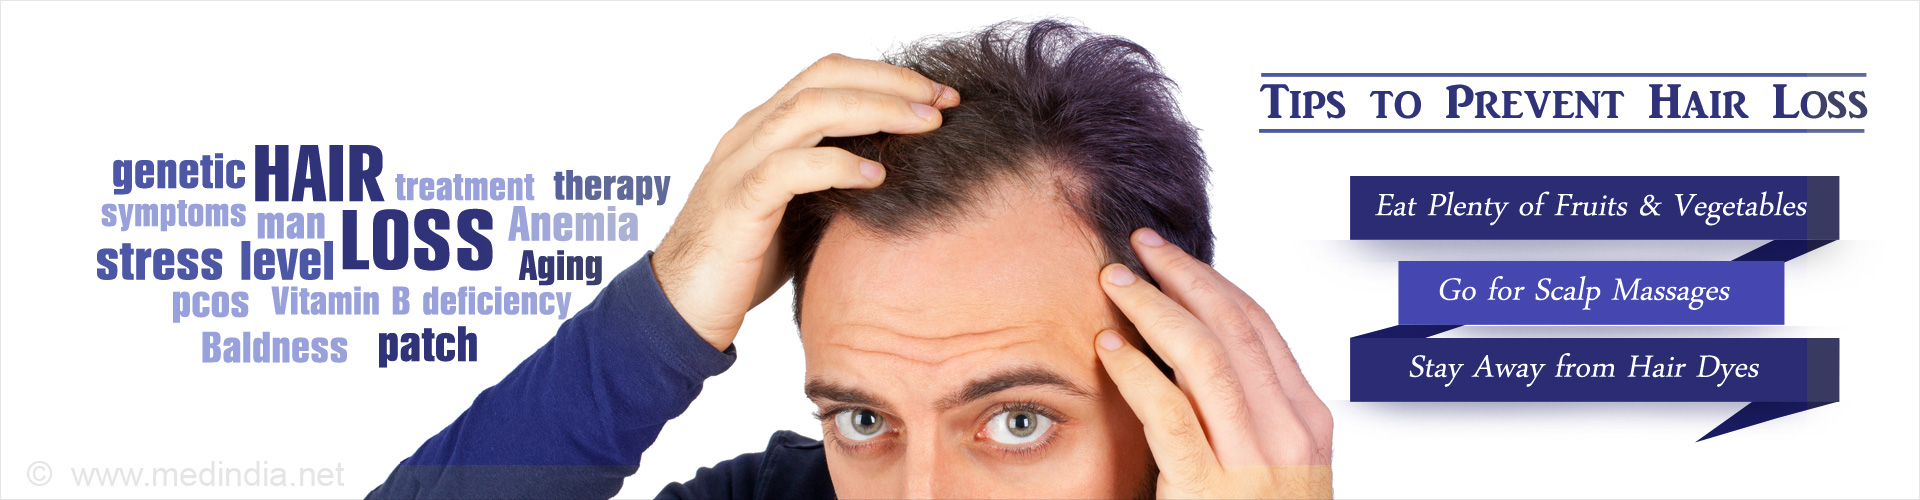 Tips to Prevent Hair Loss, Eat Plenty of Fruits and Vegetables, Go for Scalp Massages, Stay Away from Hair Dyes